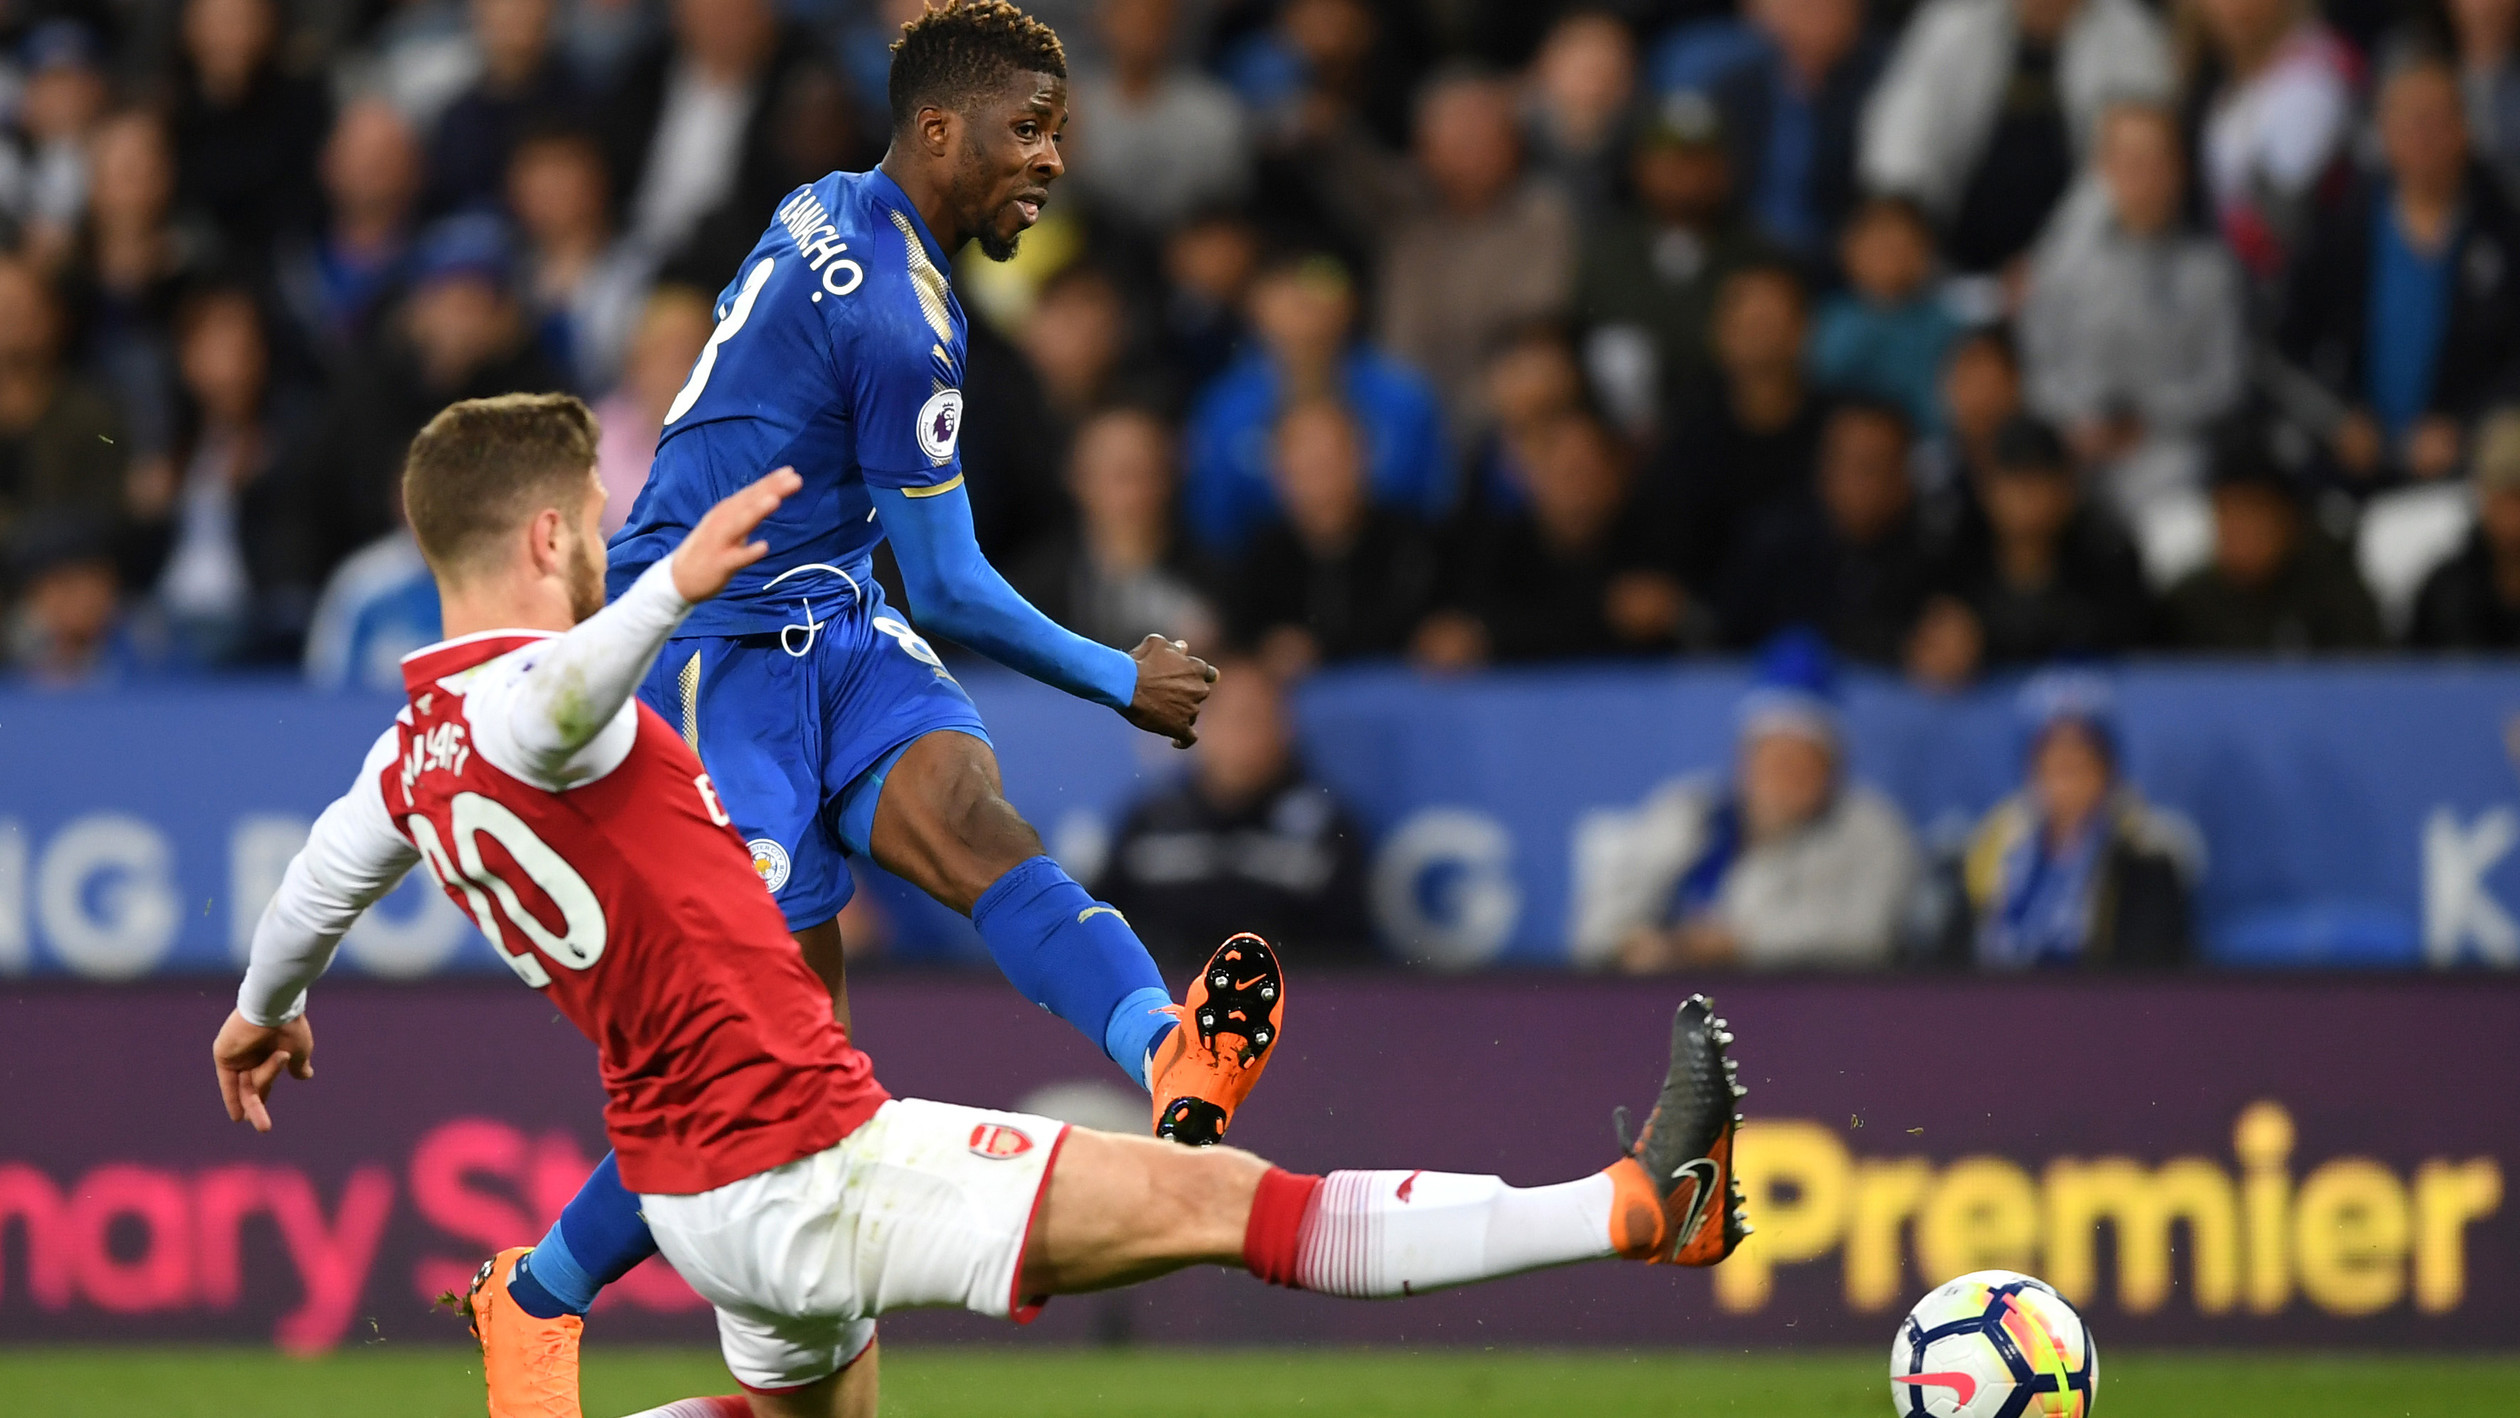 Leicester City 3, Arsenal 1 highlights | NBC Sports